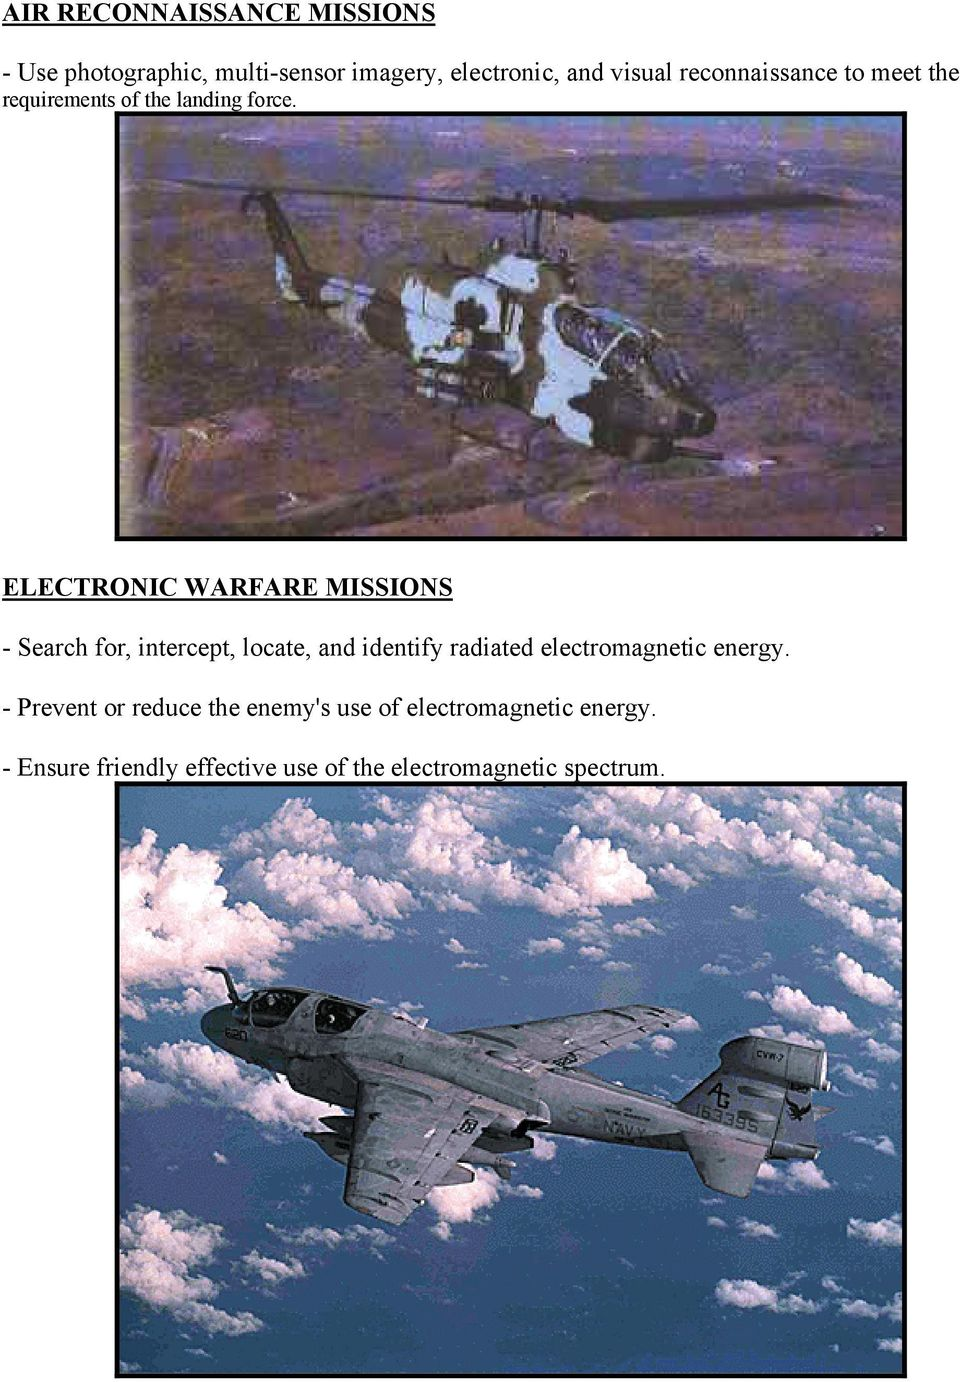 ELECTRONIC WARFARE MISSIONS - Search for, intercept, locate, and identify radiated